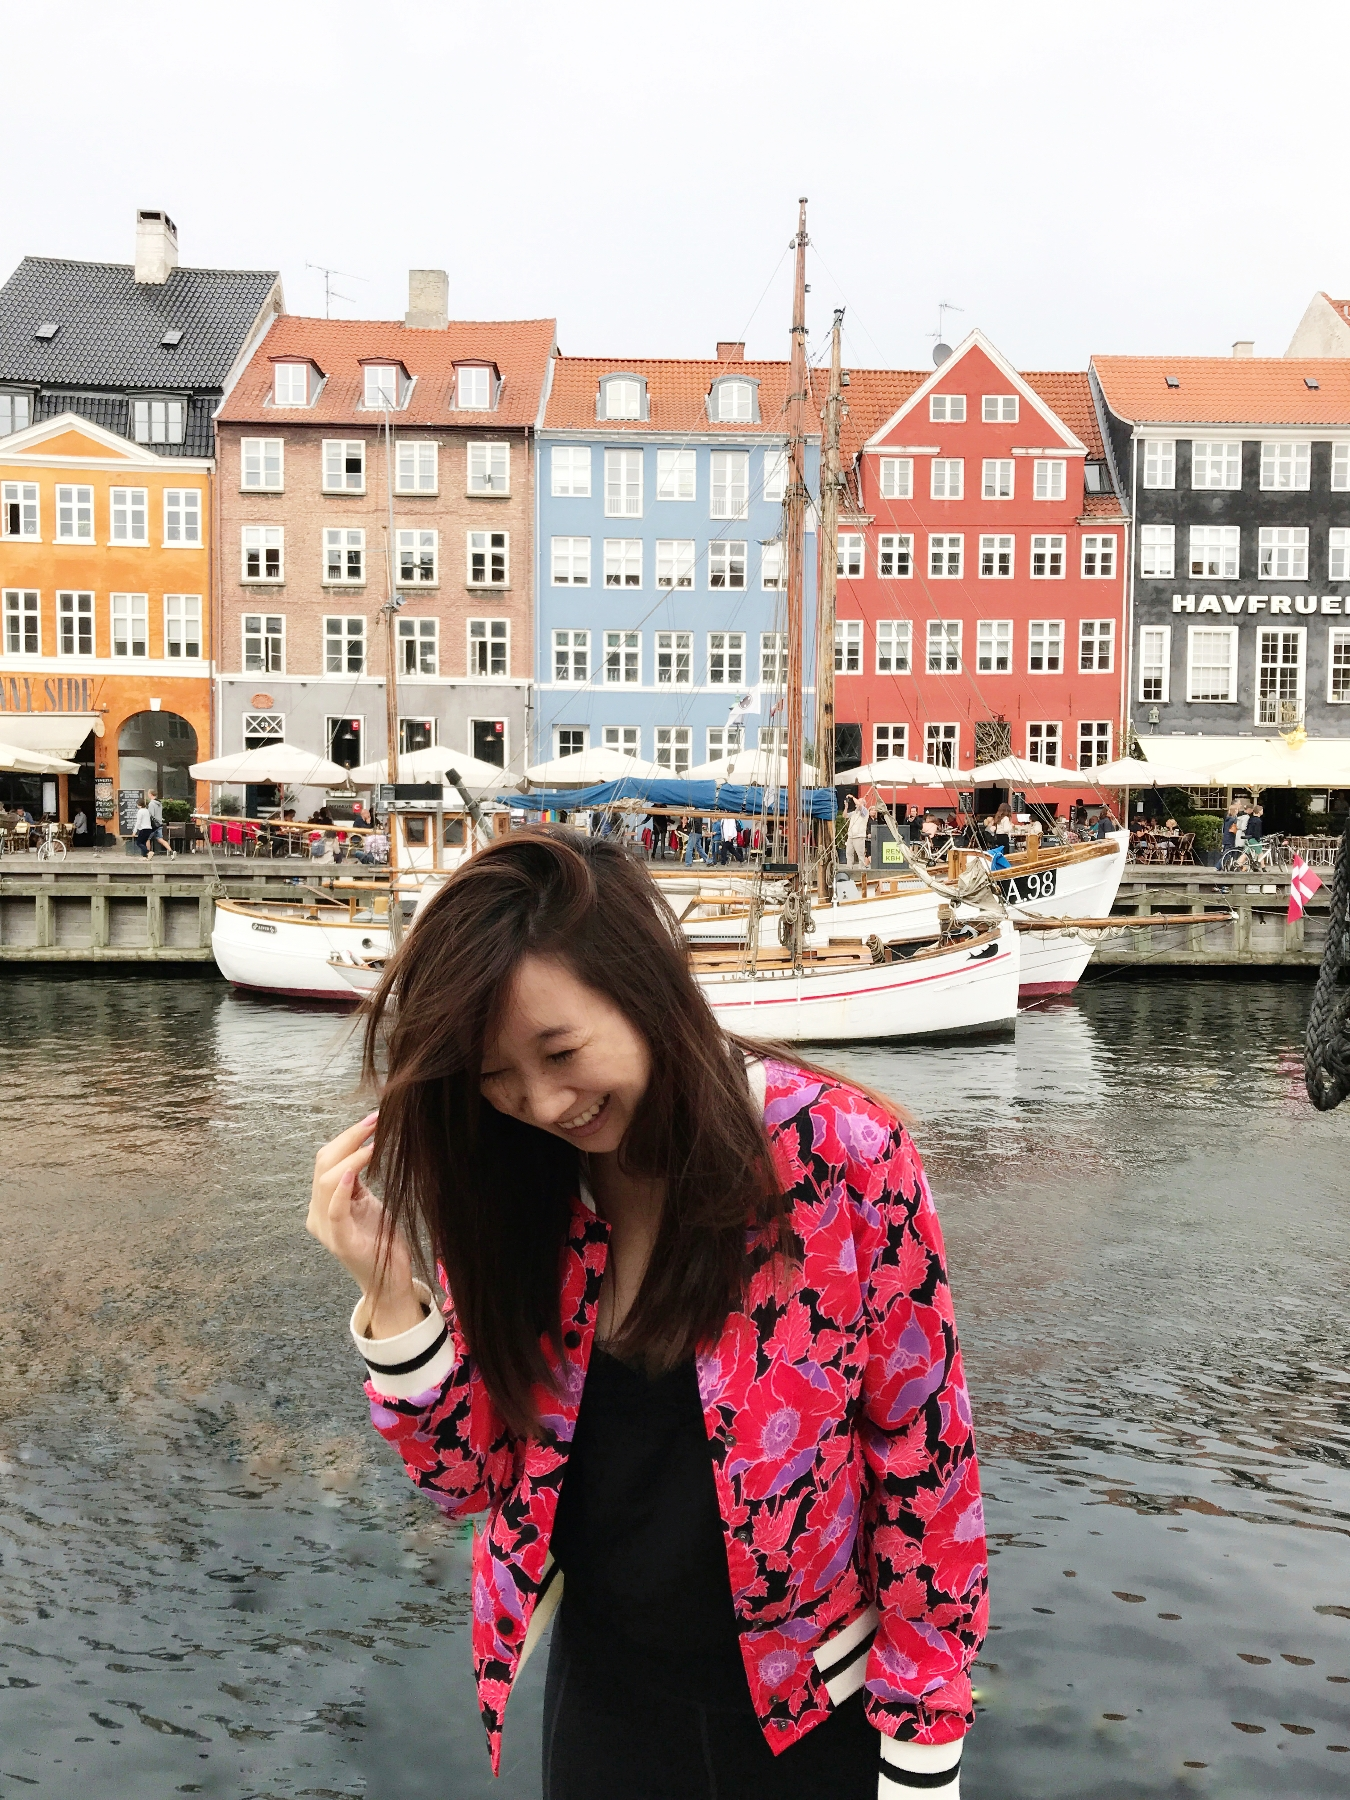 Walking alongside the colorful houses at Nyhavn was one of the highlights of my trip.